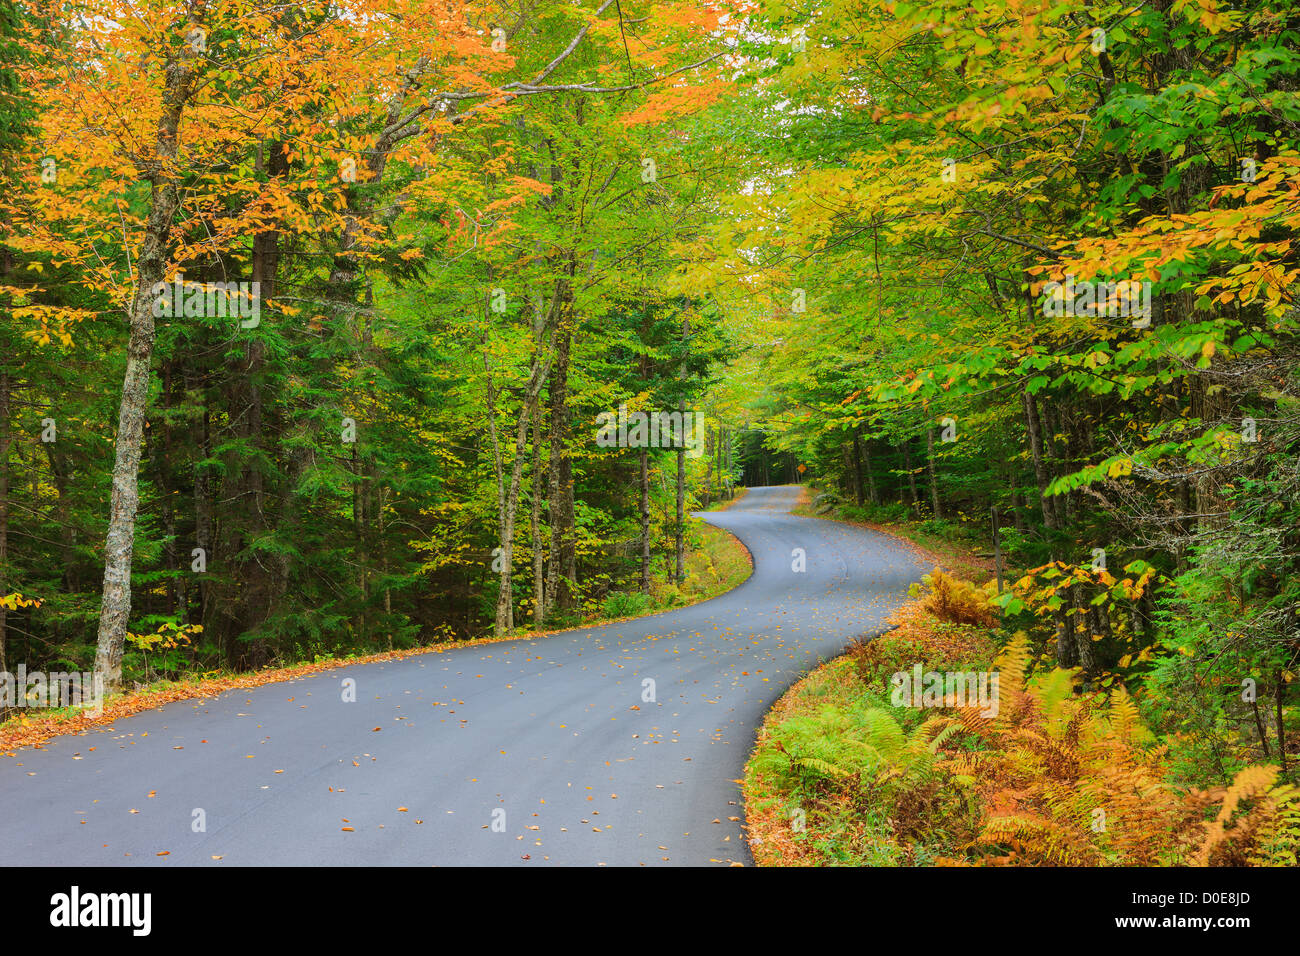 The long and winding road with autumn colors at Acadia N.P, Maine. - Stock Image